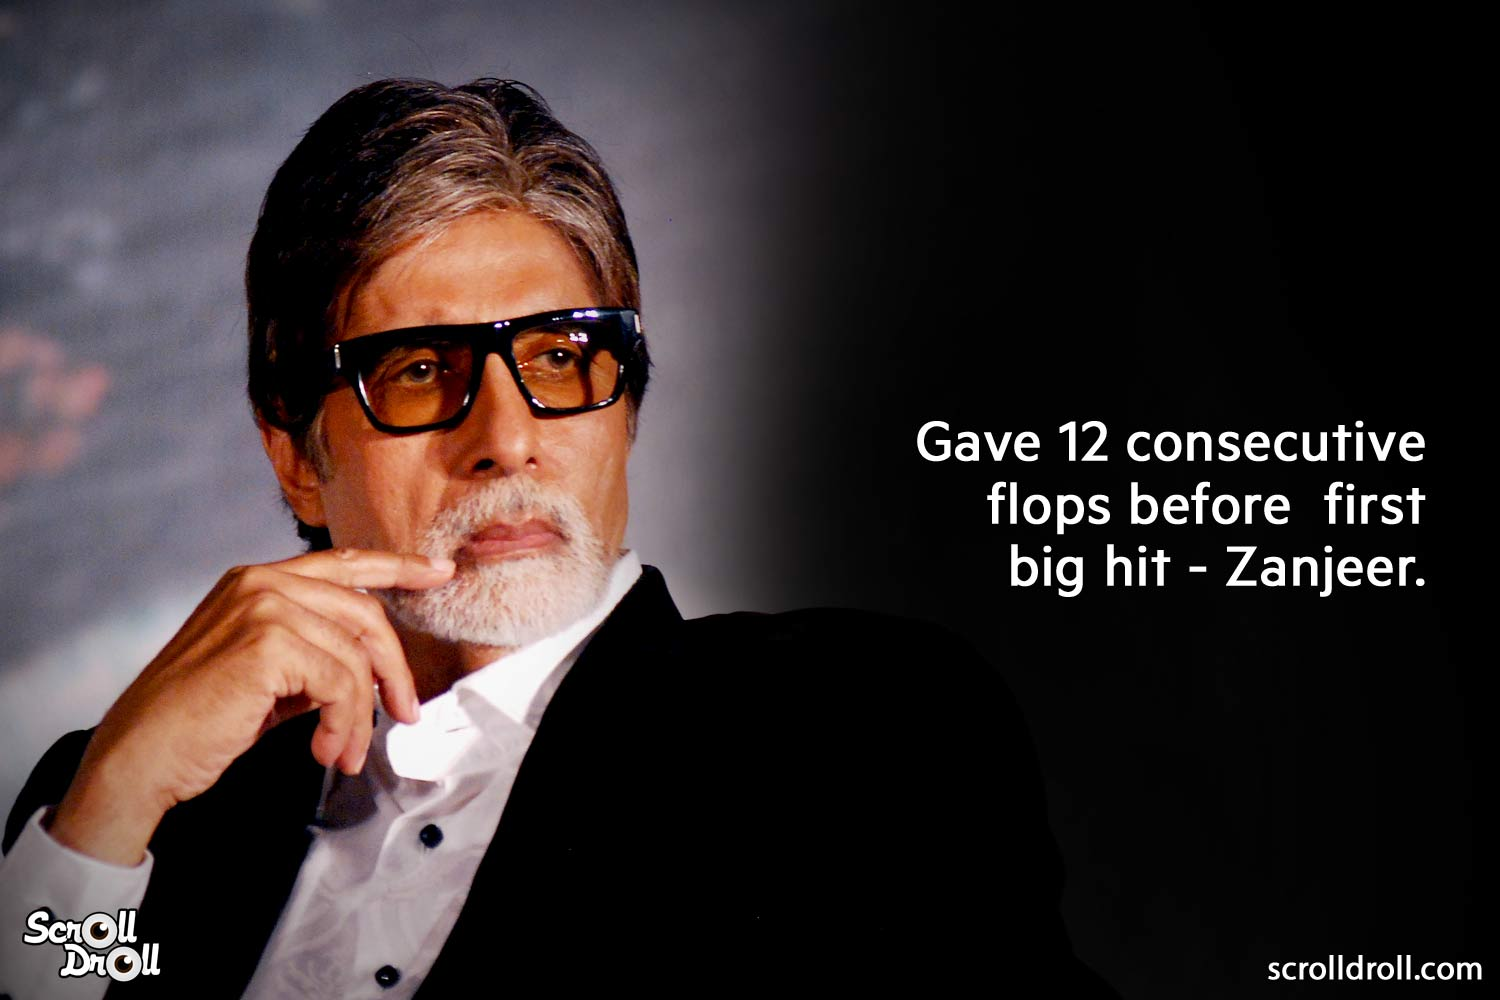 give 112 consecutive flops before first big hit zanjeer-amitabh bachchan facts